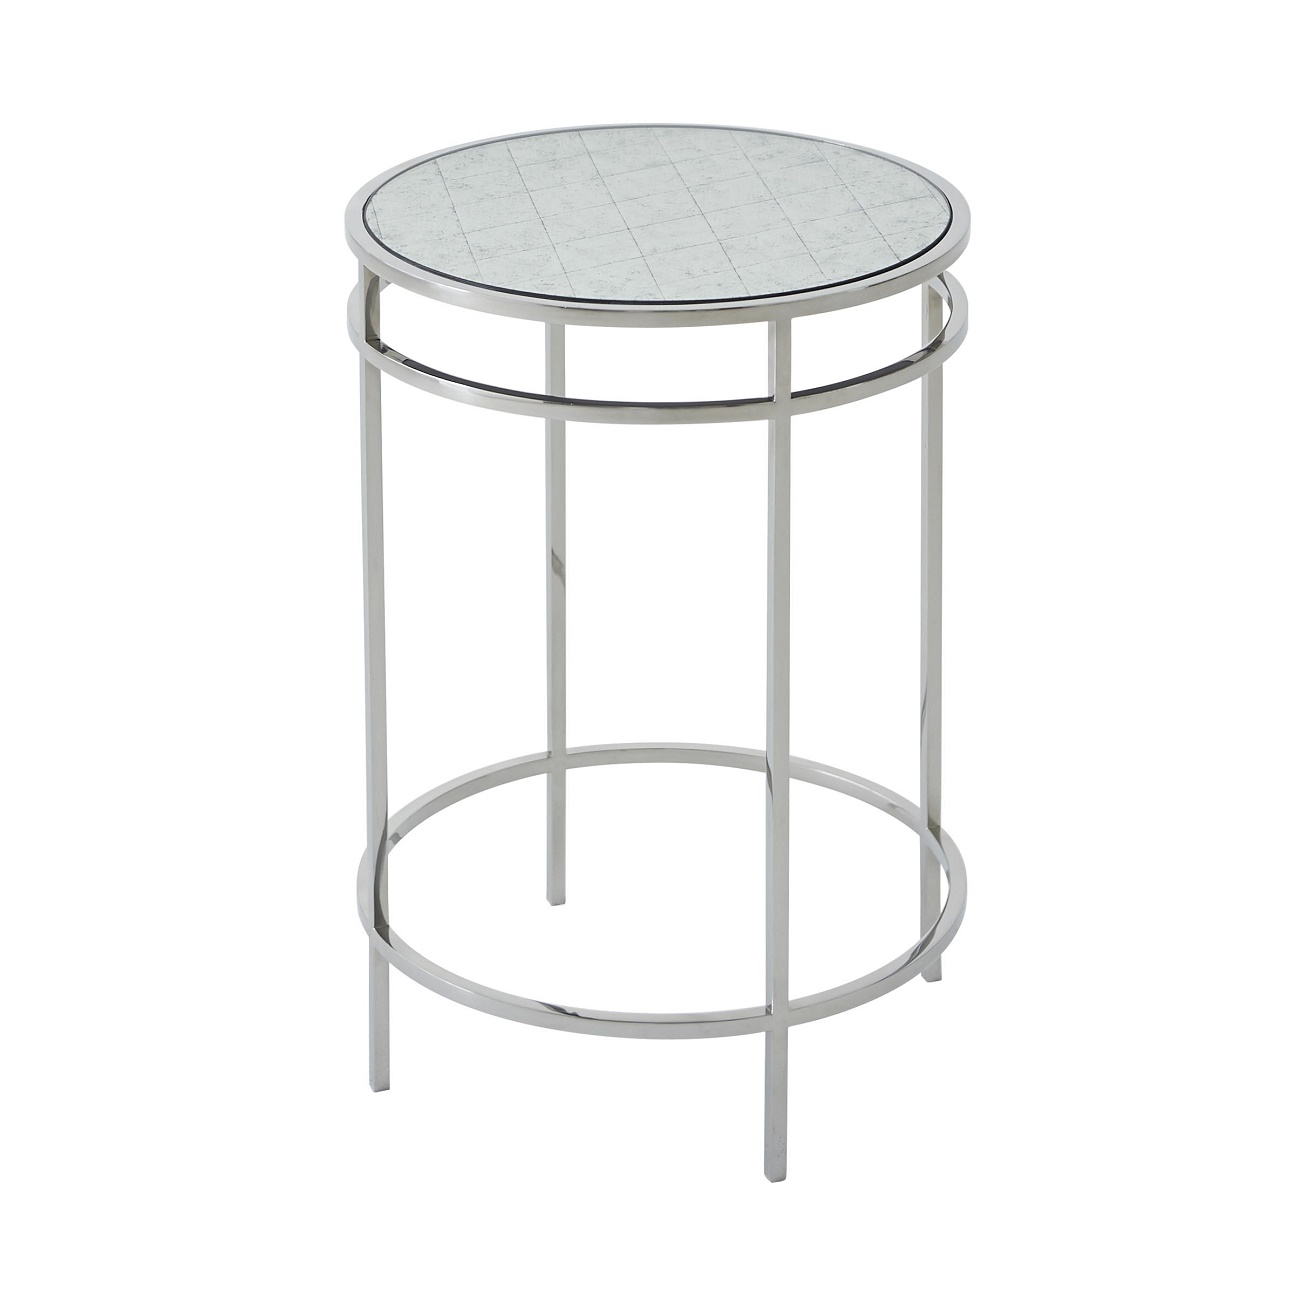 5029 065 Barton Accent Table theodore alexander